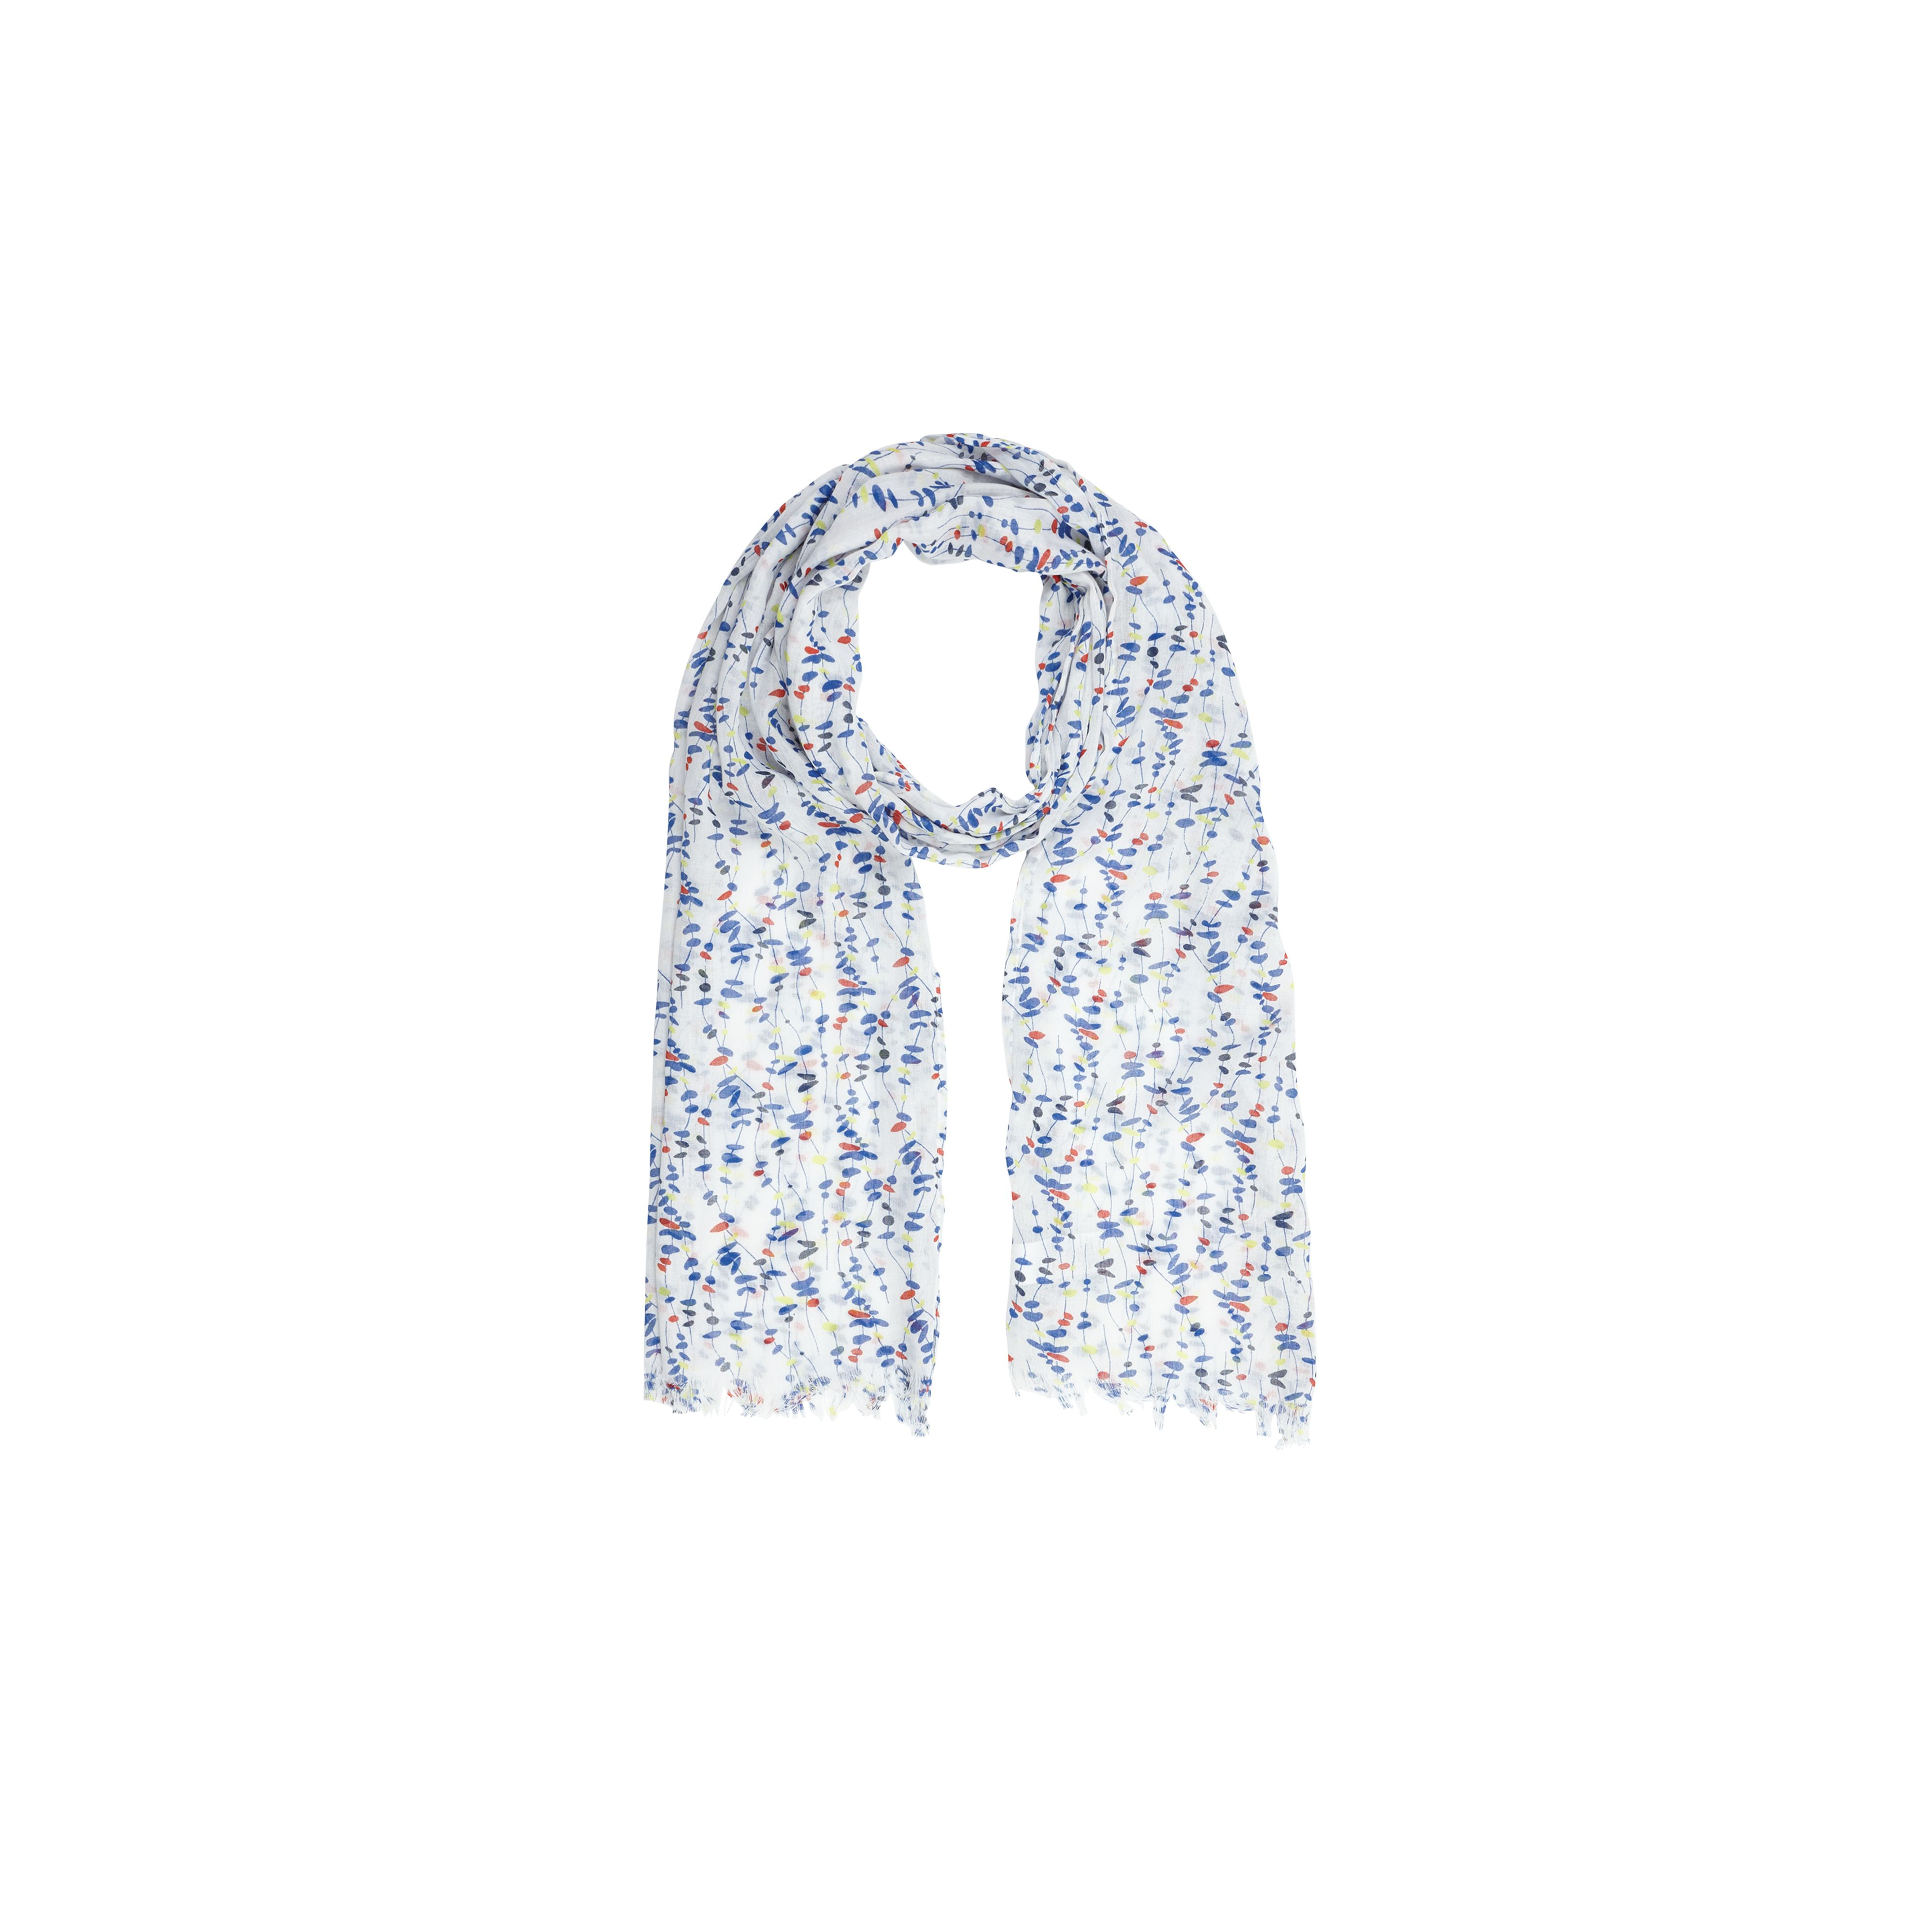 Scattered pebble print scarf